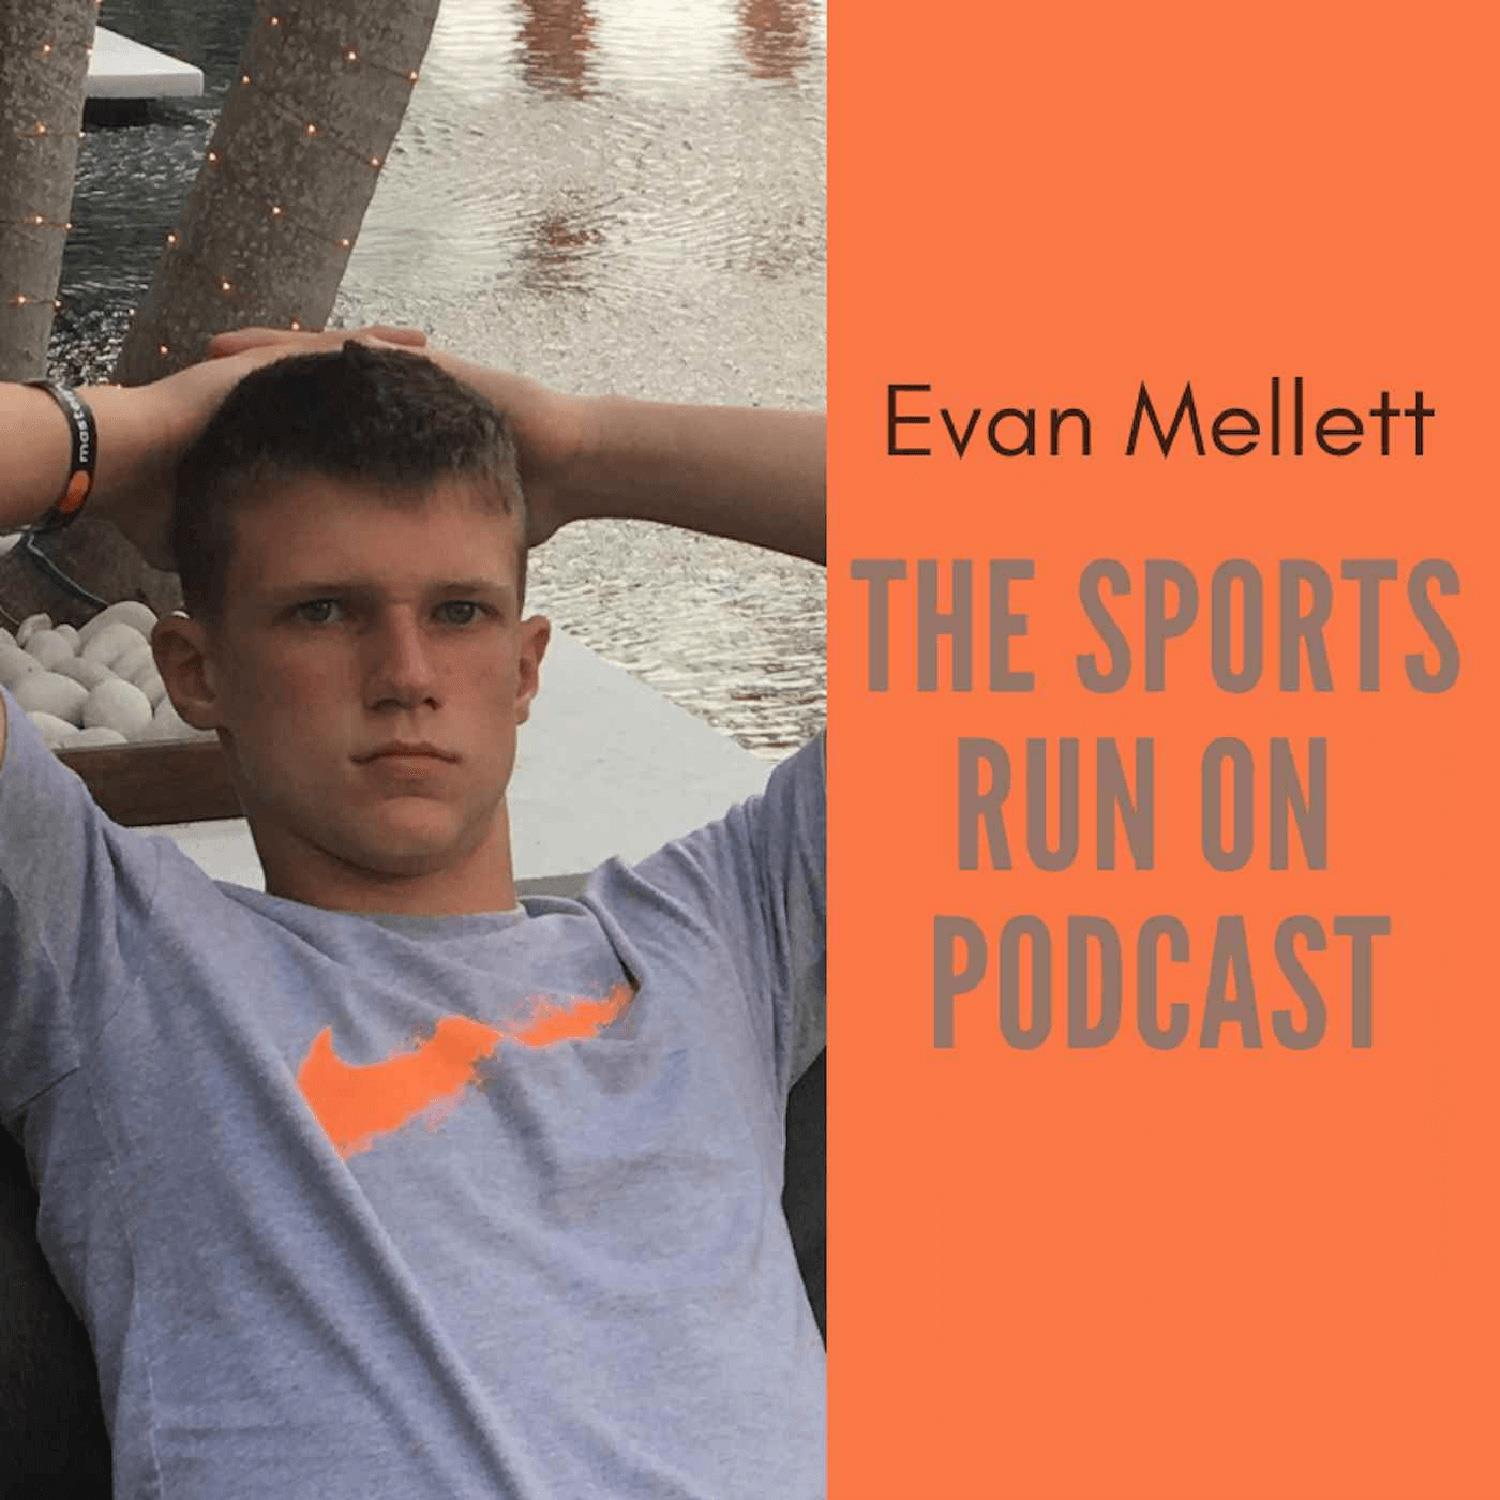 The Sports Run On Podcast – Episode 25